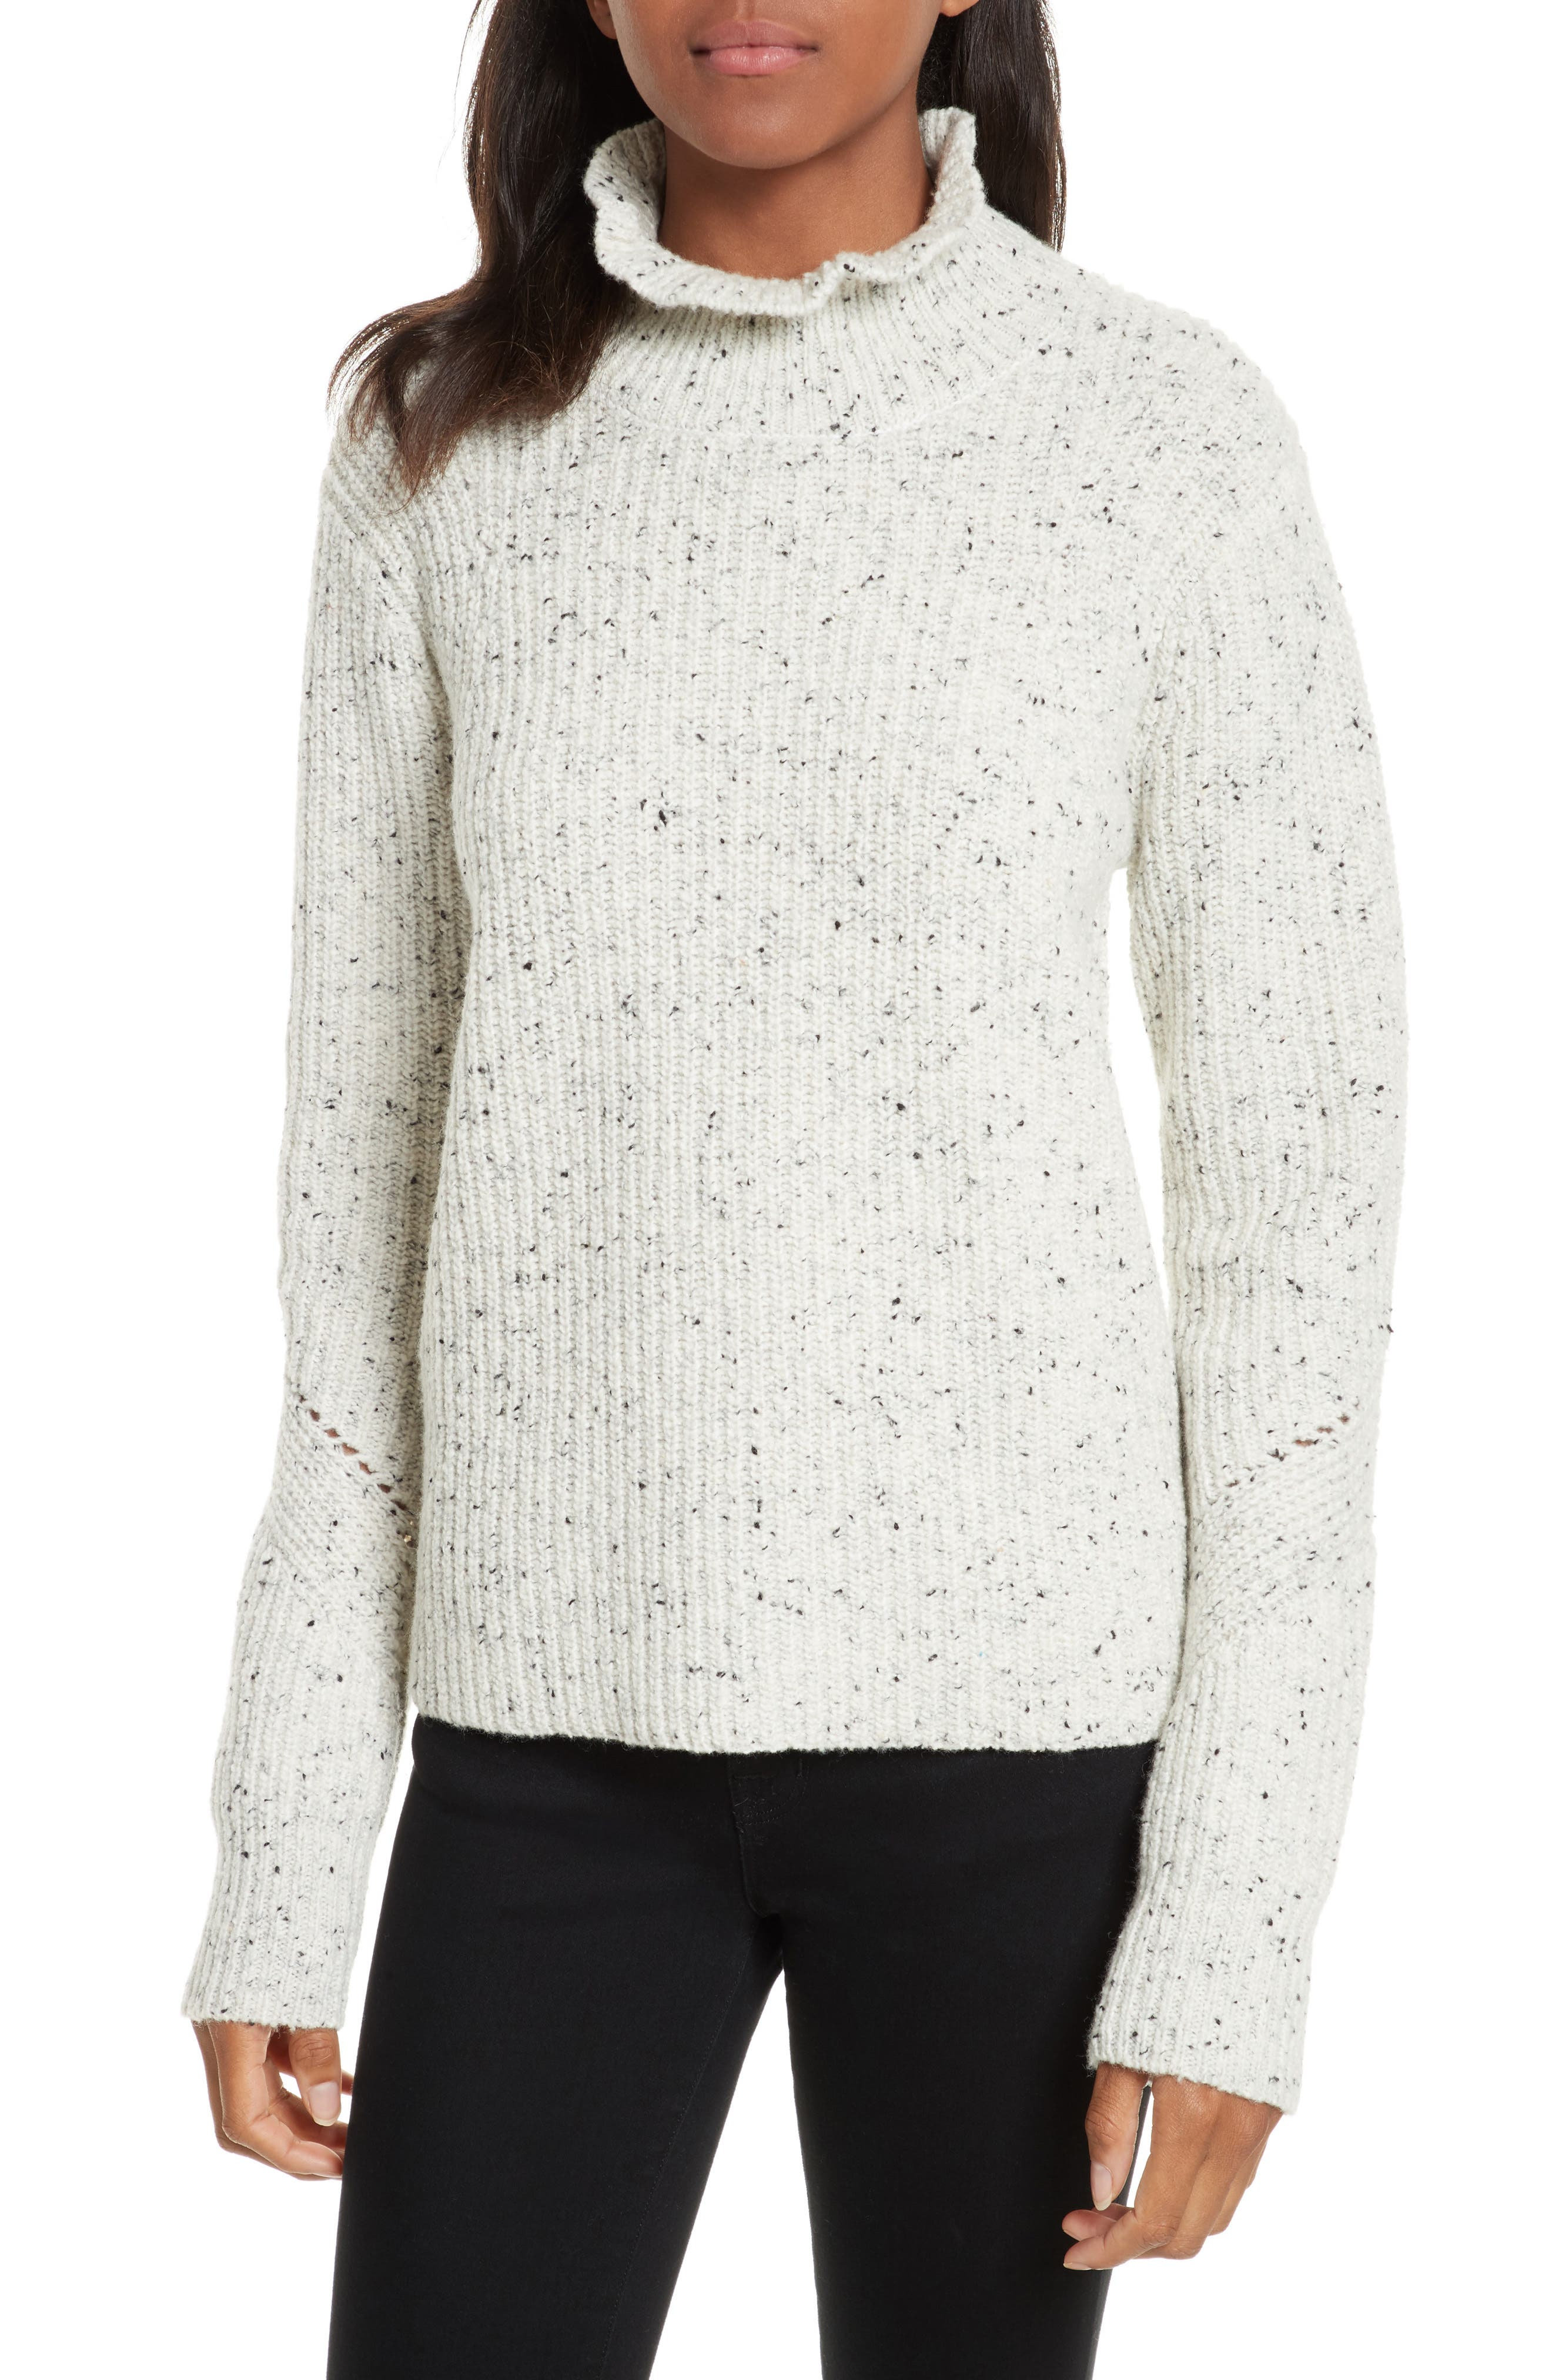 Adaliz Ribbed Ruffle Neck Sweater,                             Main thumbnail 1, color,                             Porcelain